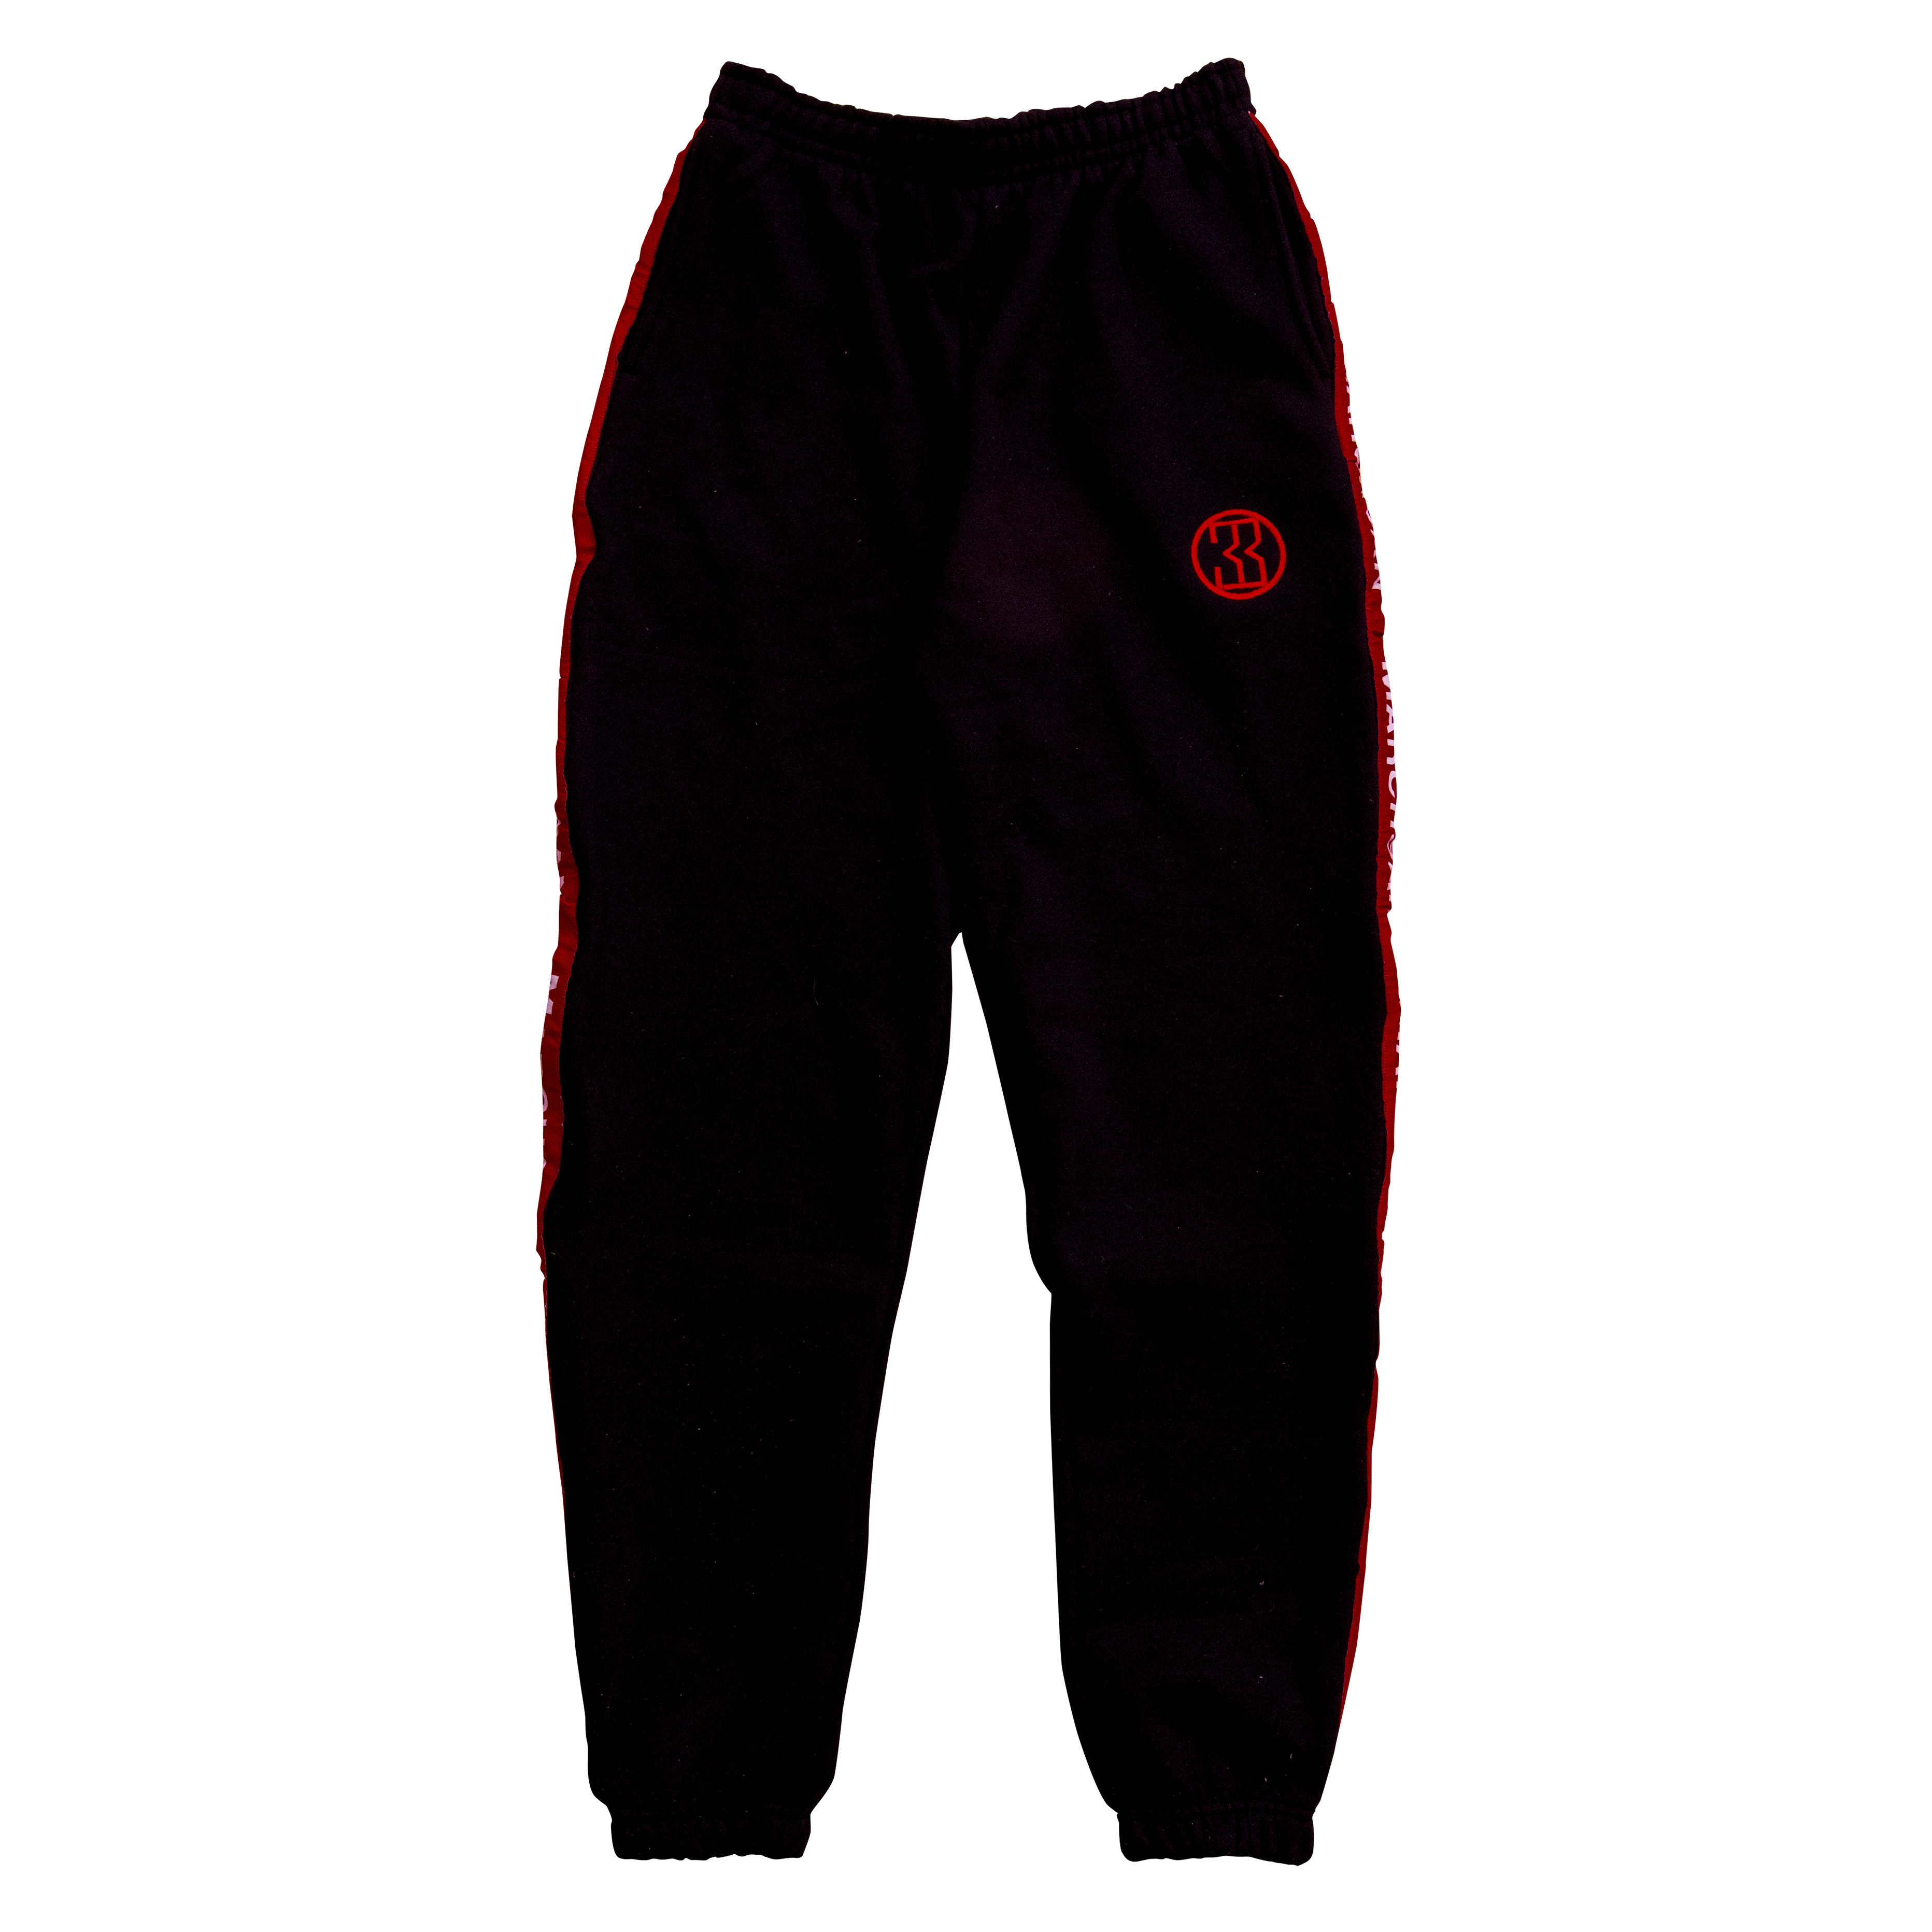 ORIGINAL Trainer pants (Red)